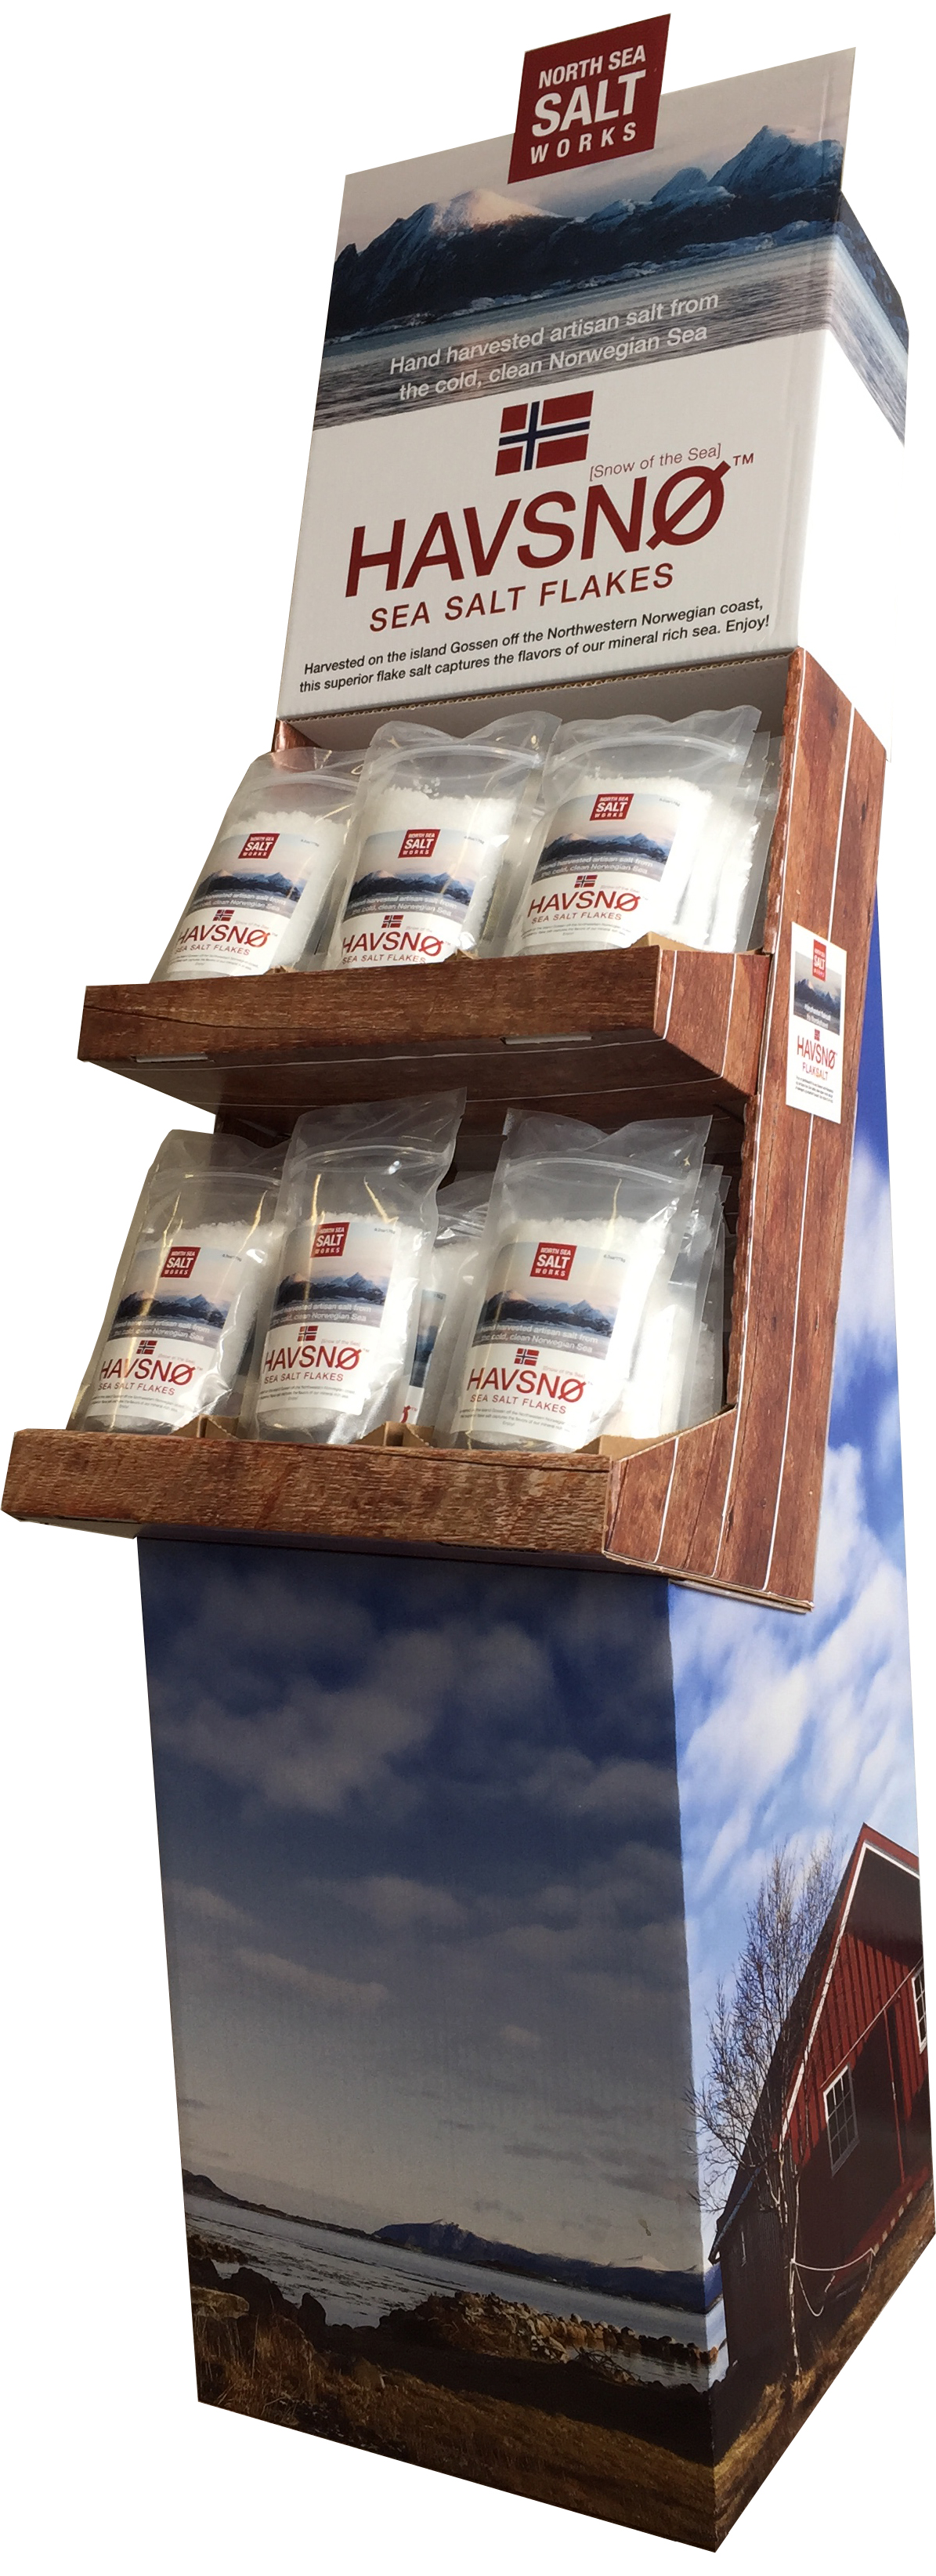 Retail display of Havsnø sea salt flakes